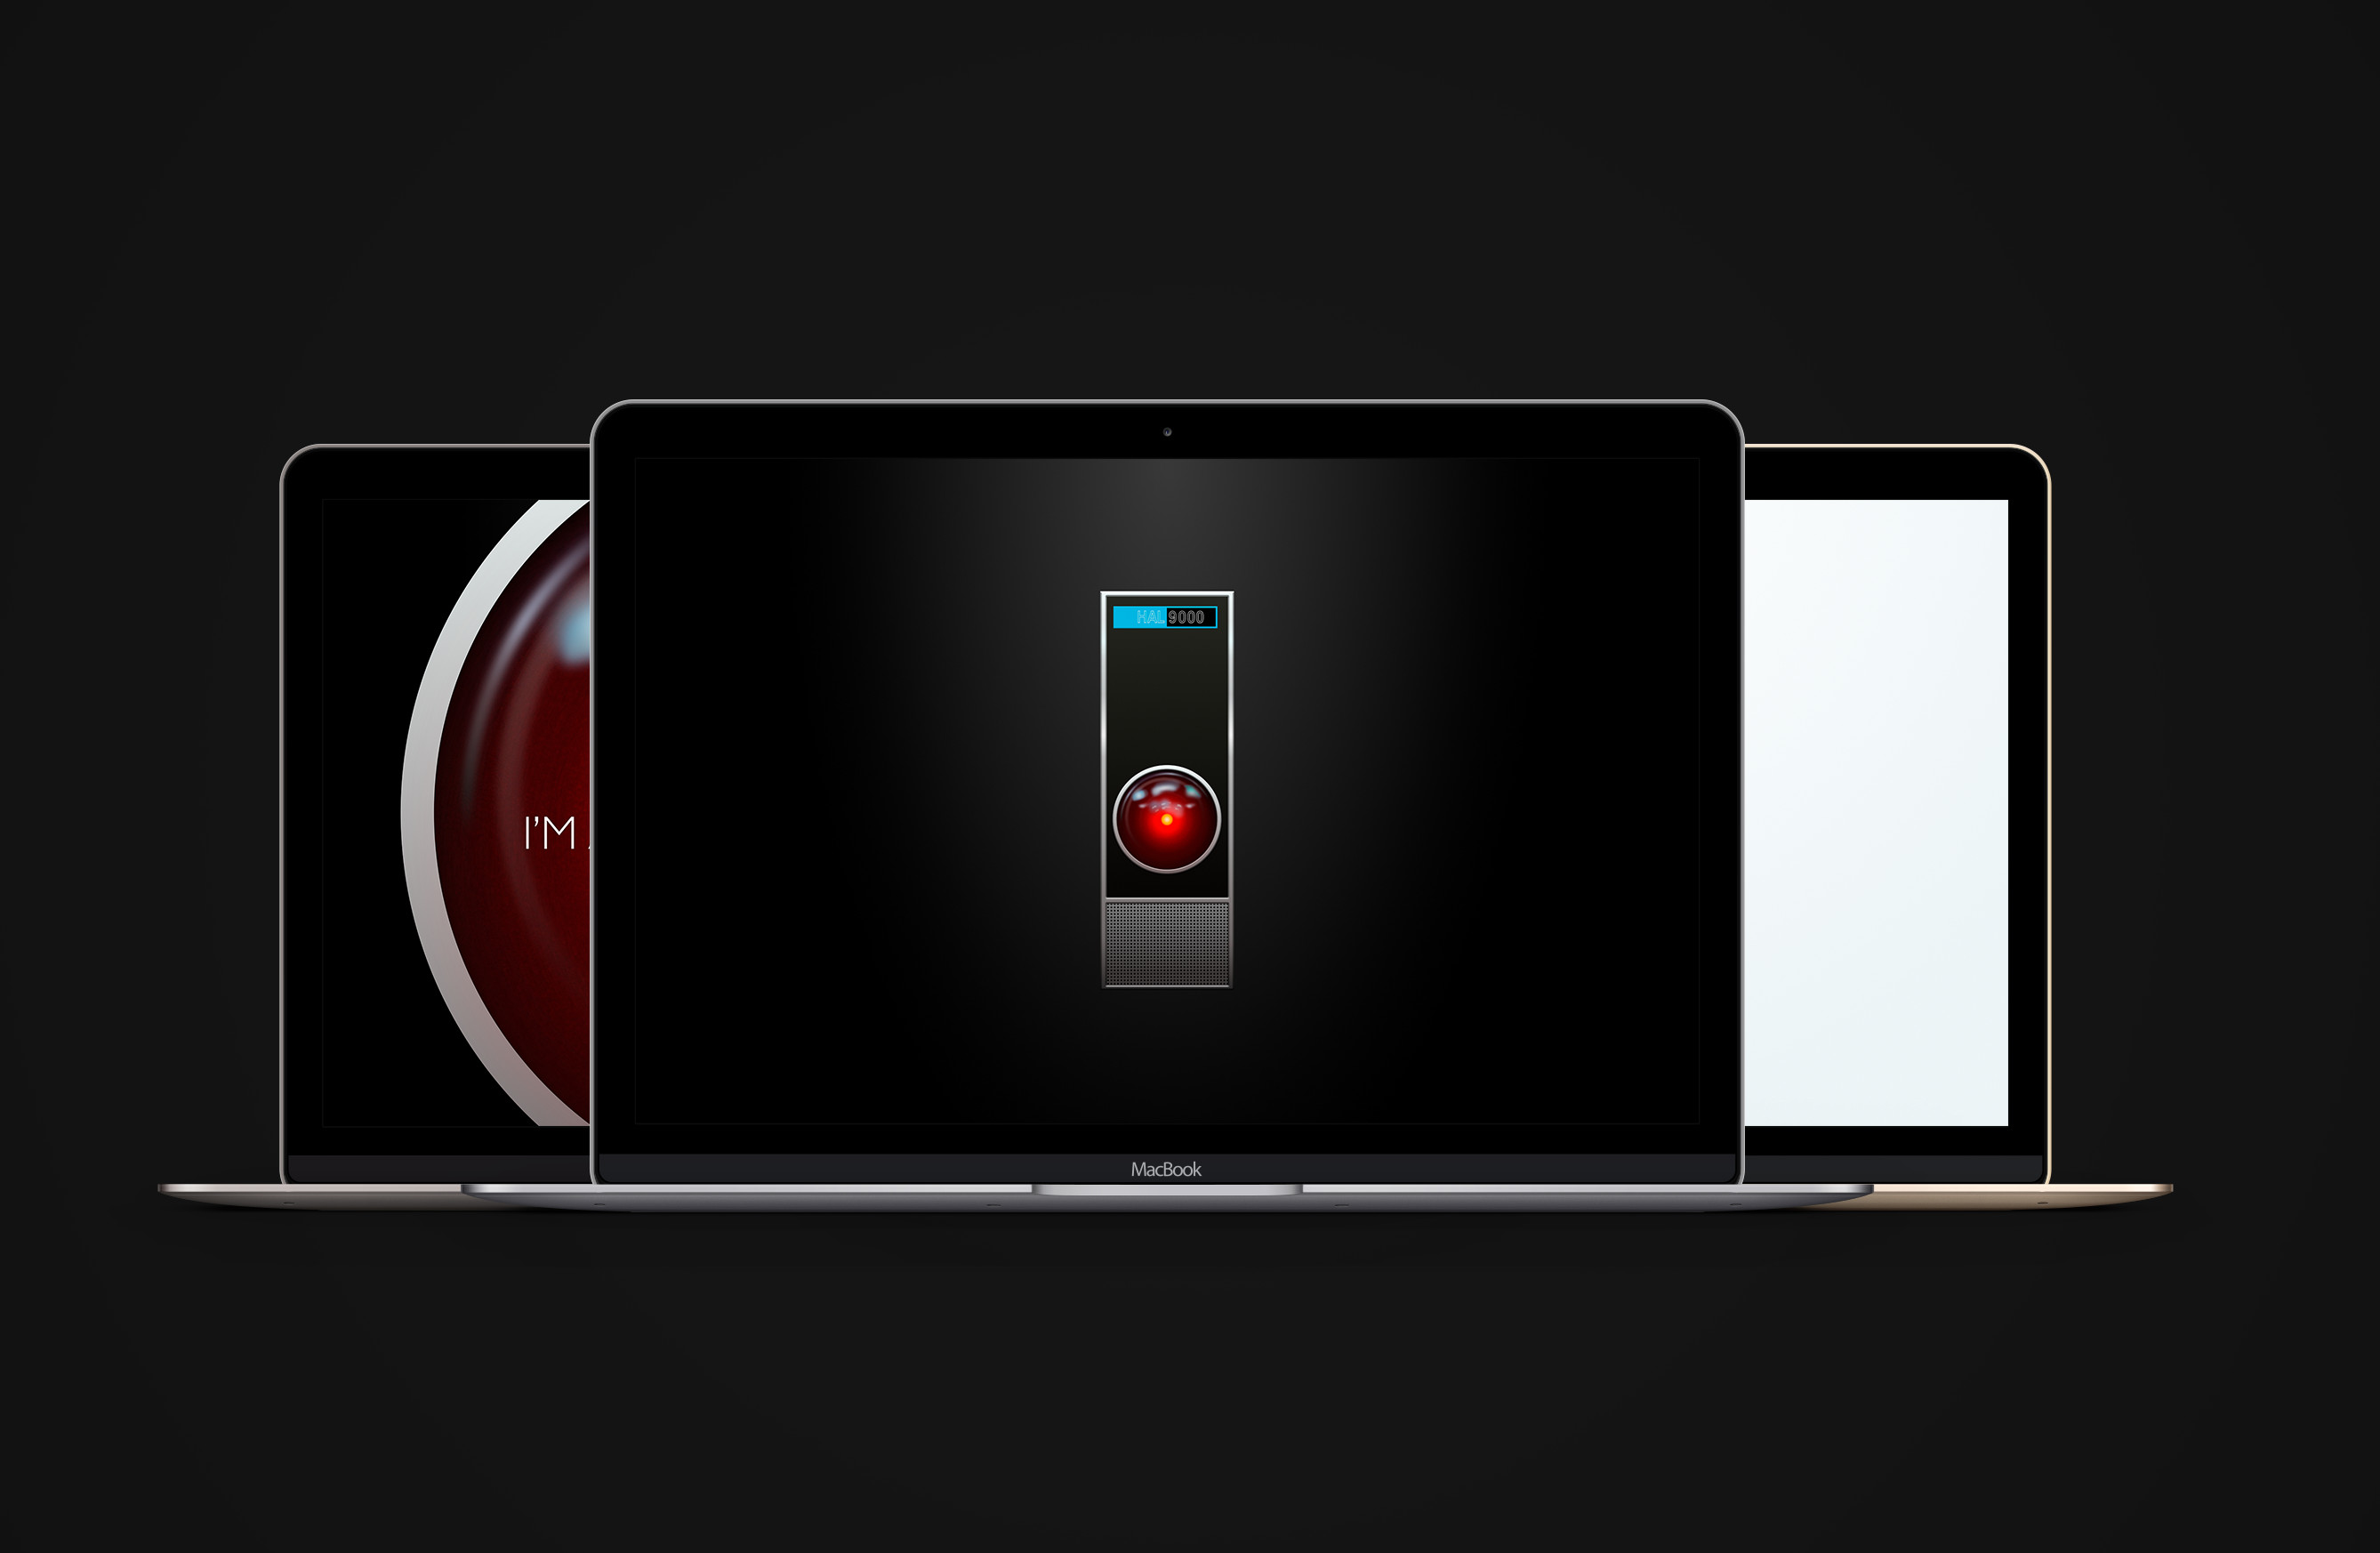 2676x1746 apple hal 9000 hd - photo #4. 6 Pop Culture Mysteries That Were Solved by  Fans